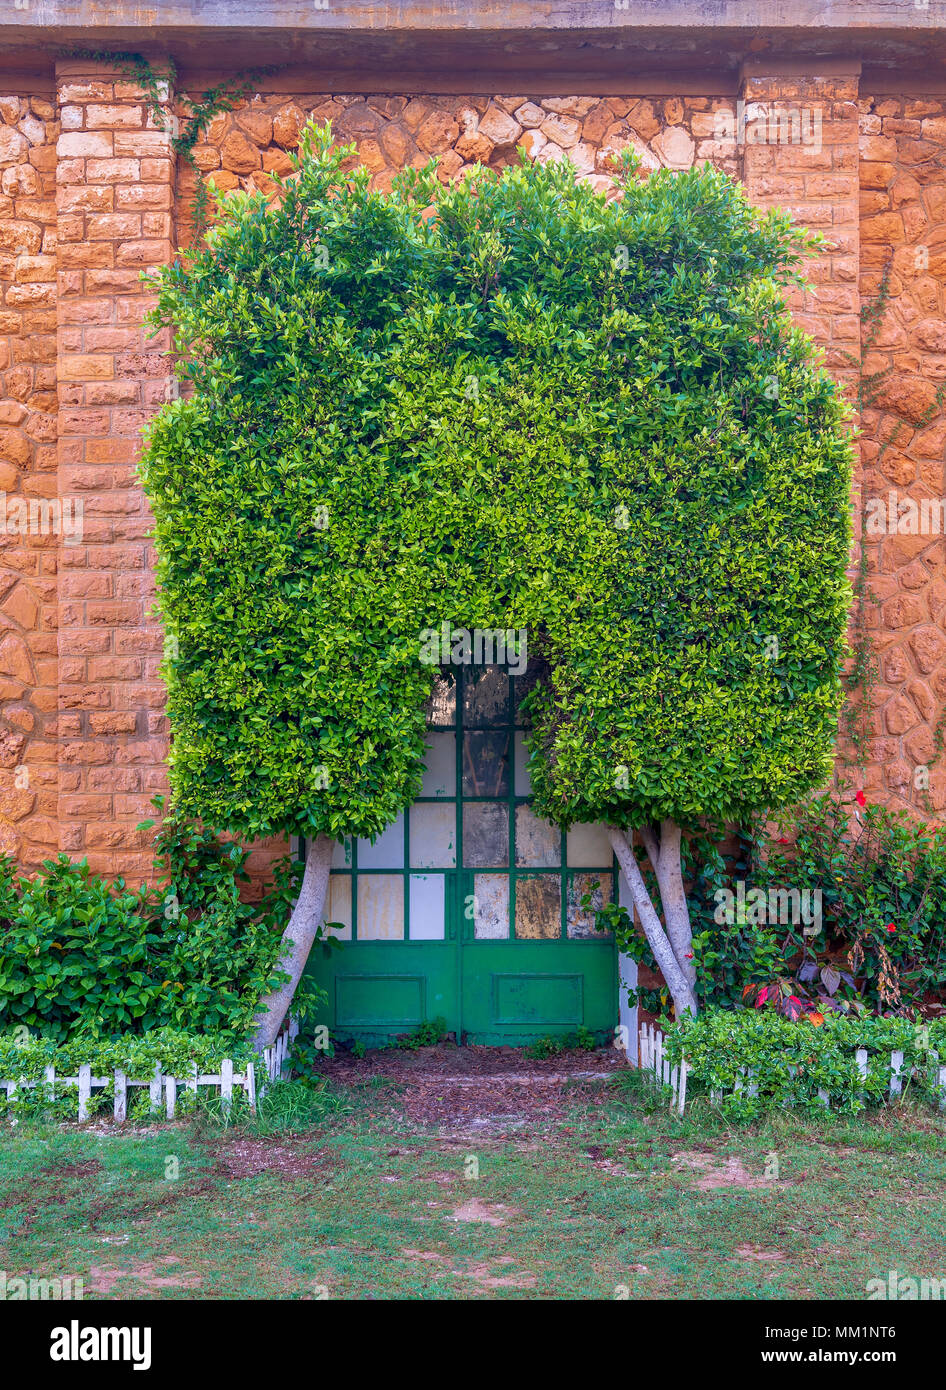 Orange colored bricks stone wall with grunge green metal grid door covered with arched tree, green grass, and plants at summer time, Montaza Public pa - Stock Image